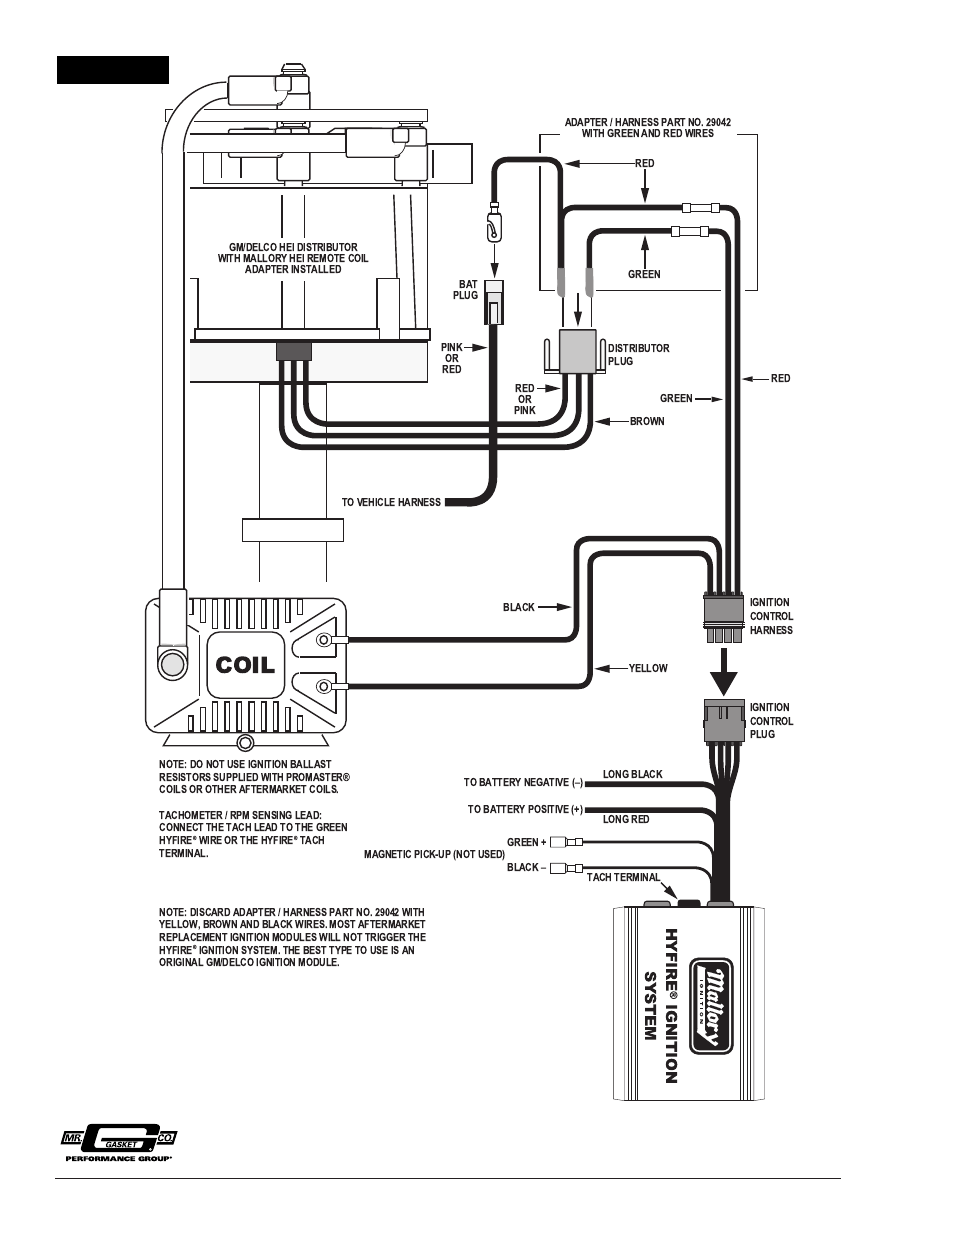 mallory ignition mallory hei remote coil adapter 29049_29050 page2?resize\\\\\\\\\\\\=665%2C861 excellent mallory ignition wiring diagram chevy photos wiring  at readyjetset.co